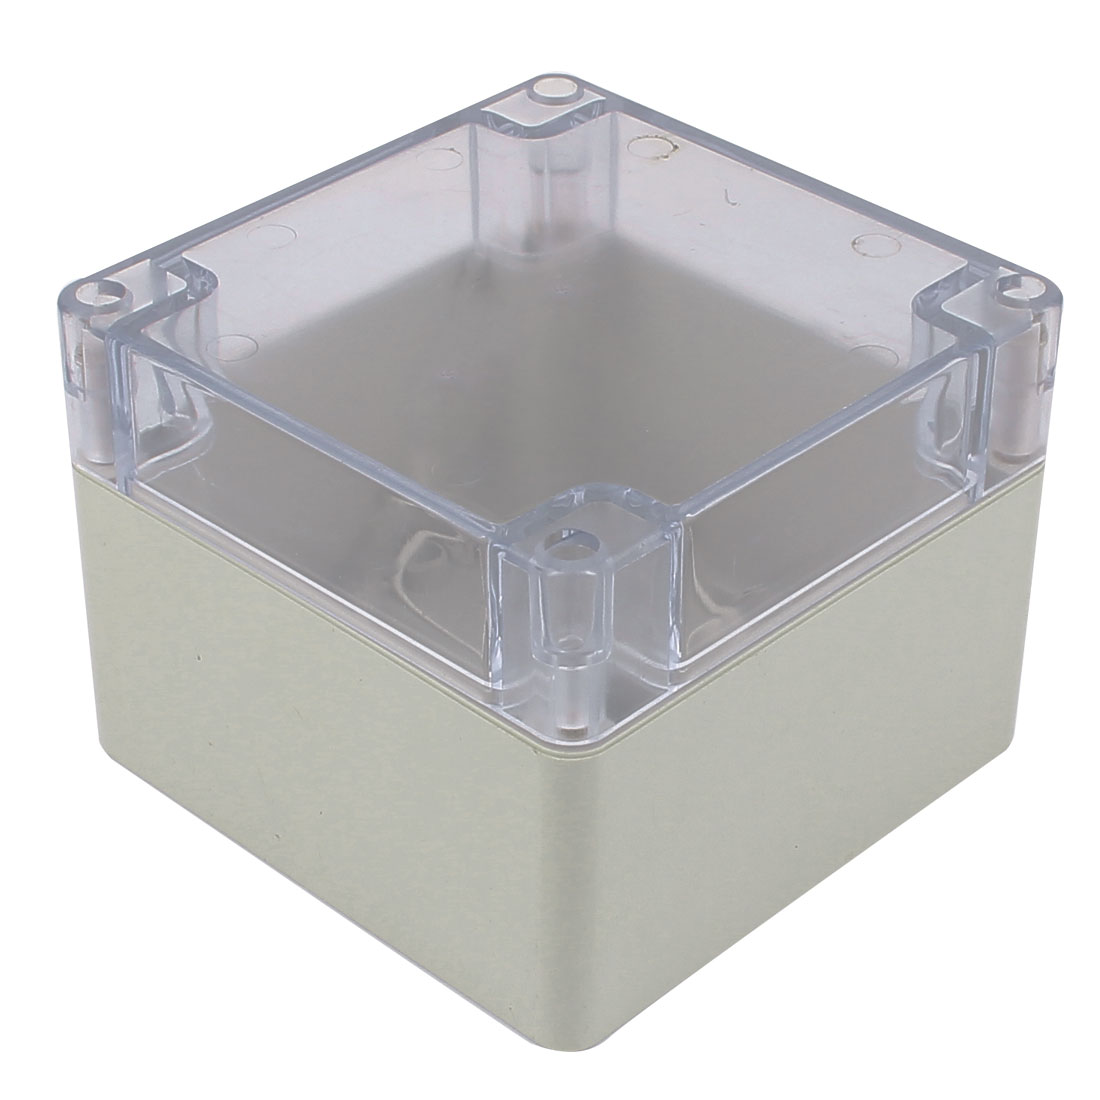 120mm x 120mm x 90mm Clear Cover Dustproof IP65 Enclosure Case DIY Junction Box